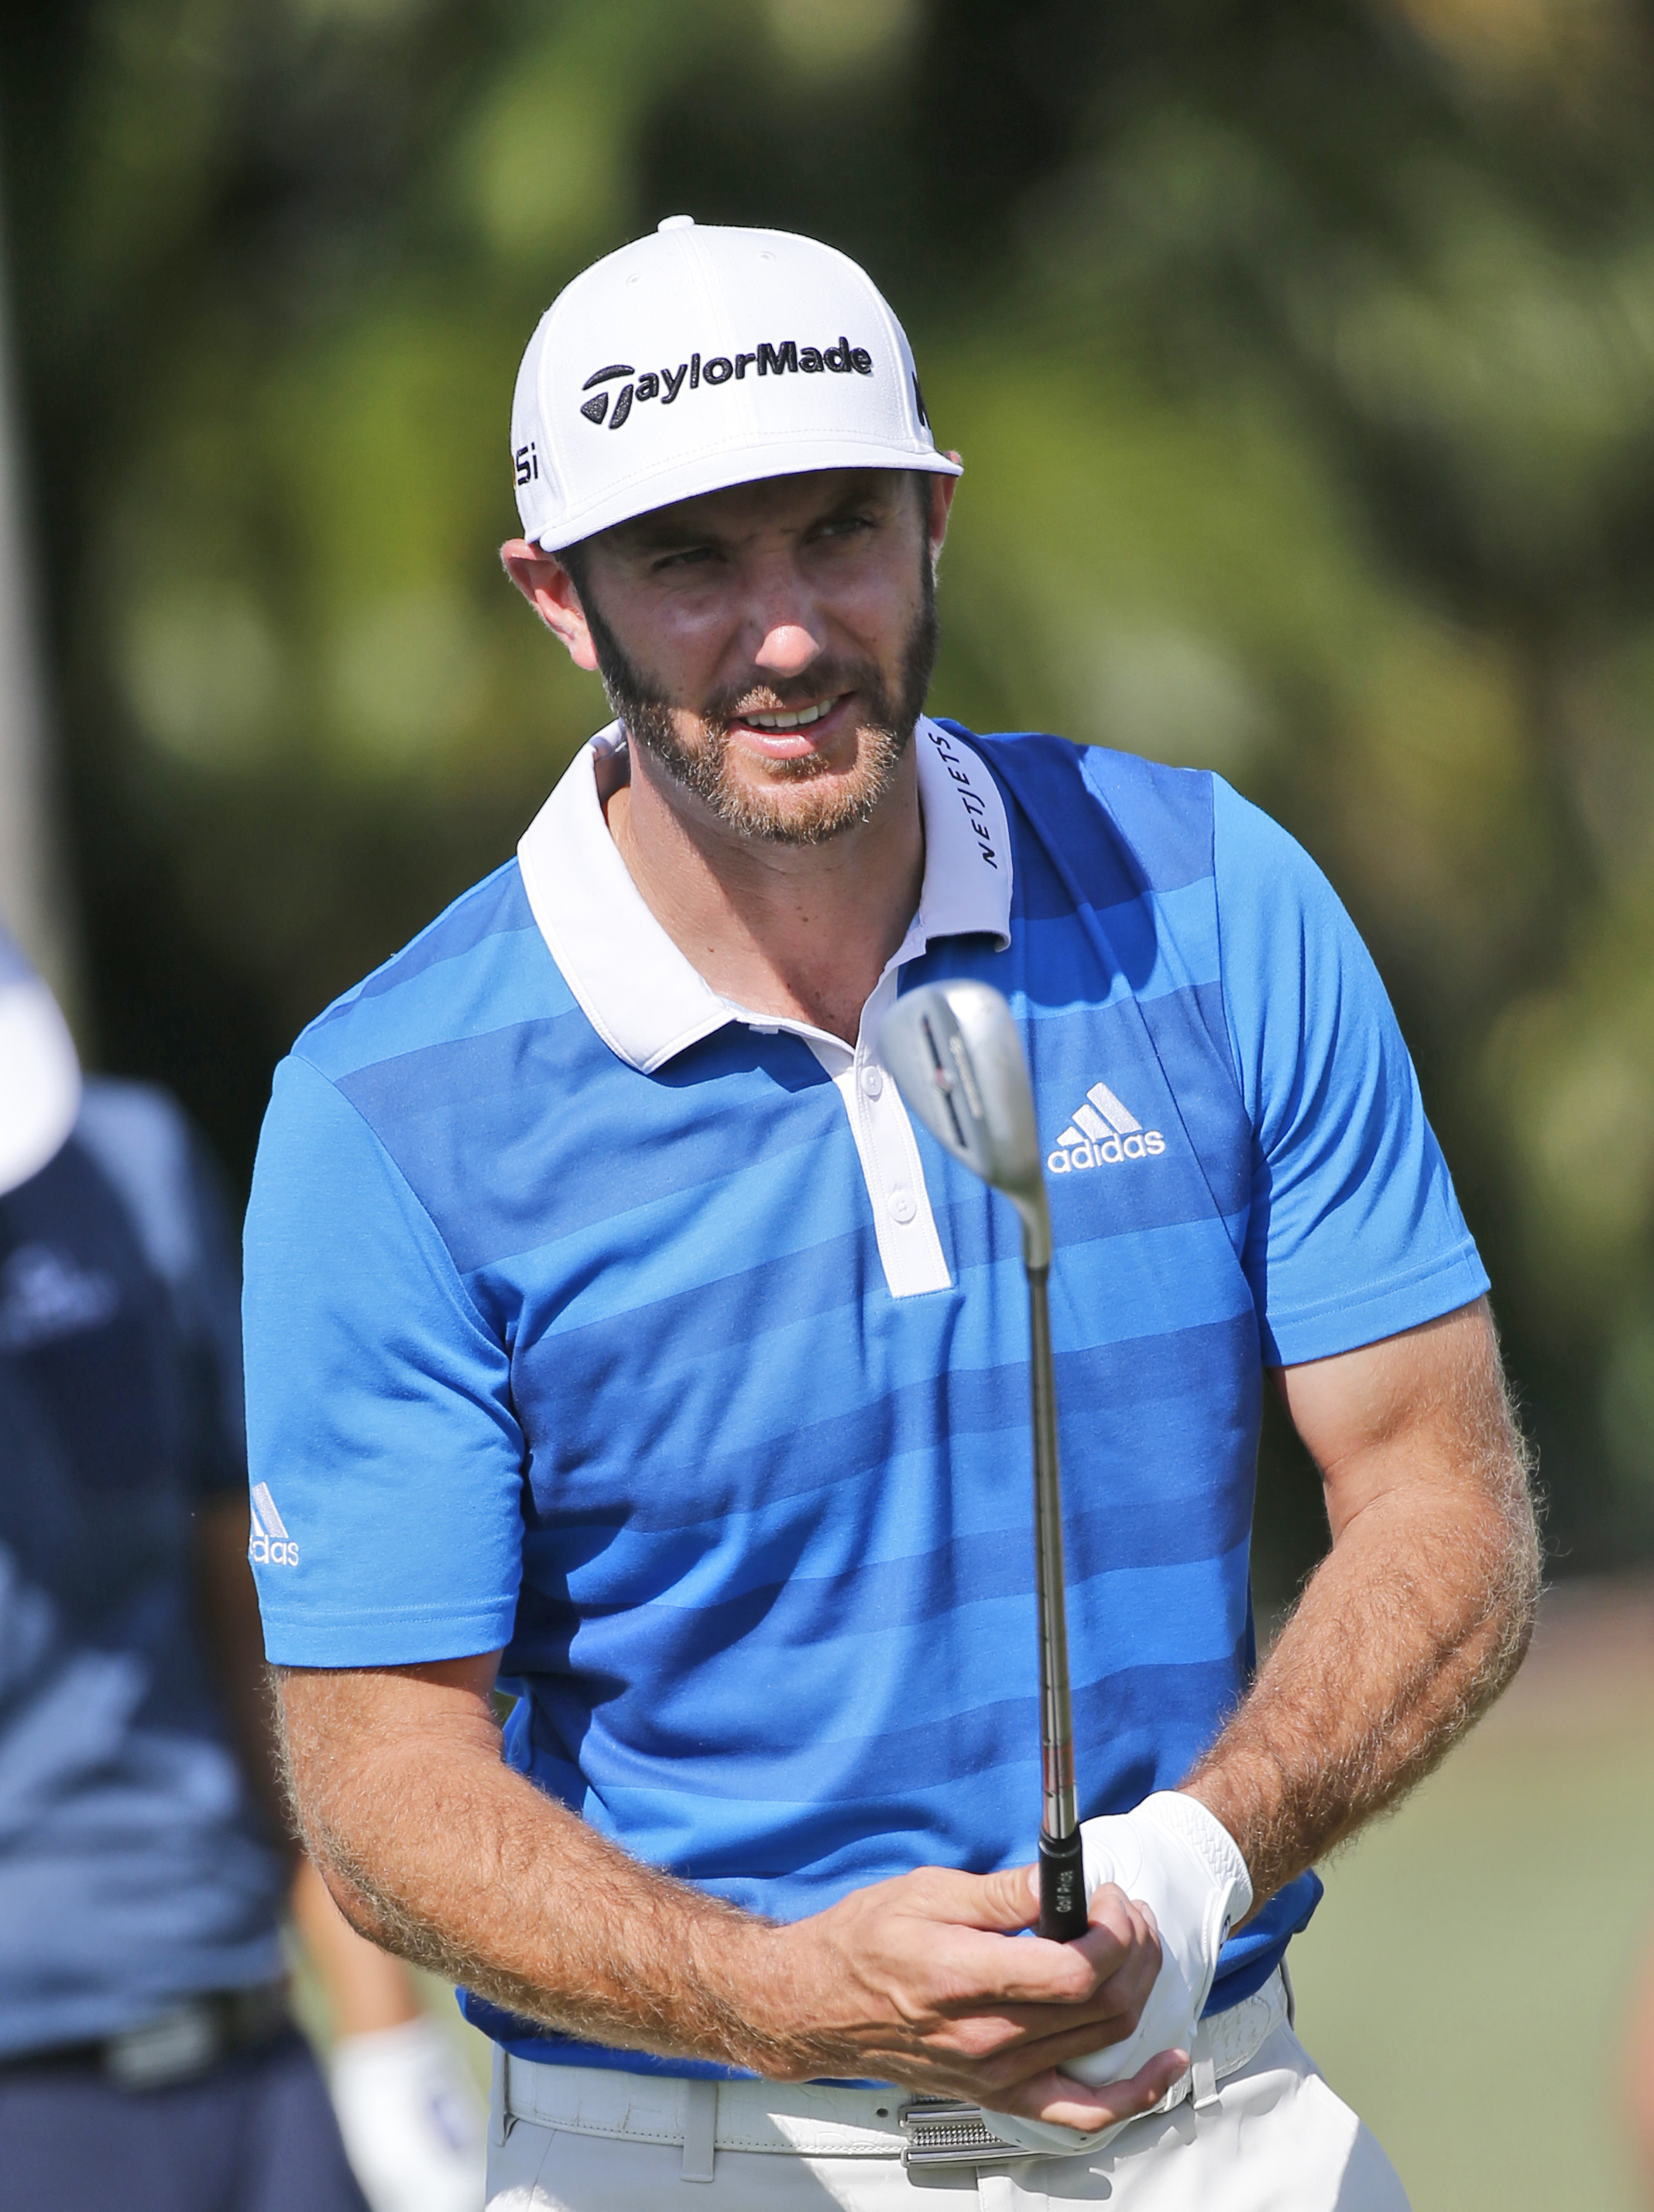 Dustin Johnson prepares to hit on the driving range during a practice day at the Cadillac Championship golf tournament, Wednesday, March 2, 2016, in Doral, Fla. (AP Photo/Wilfredo Lee)